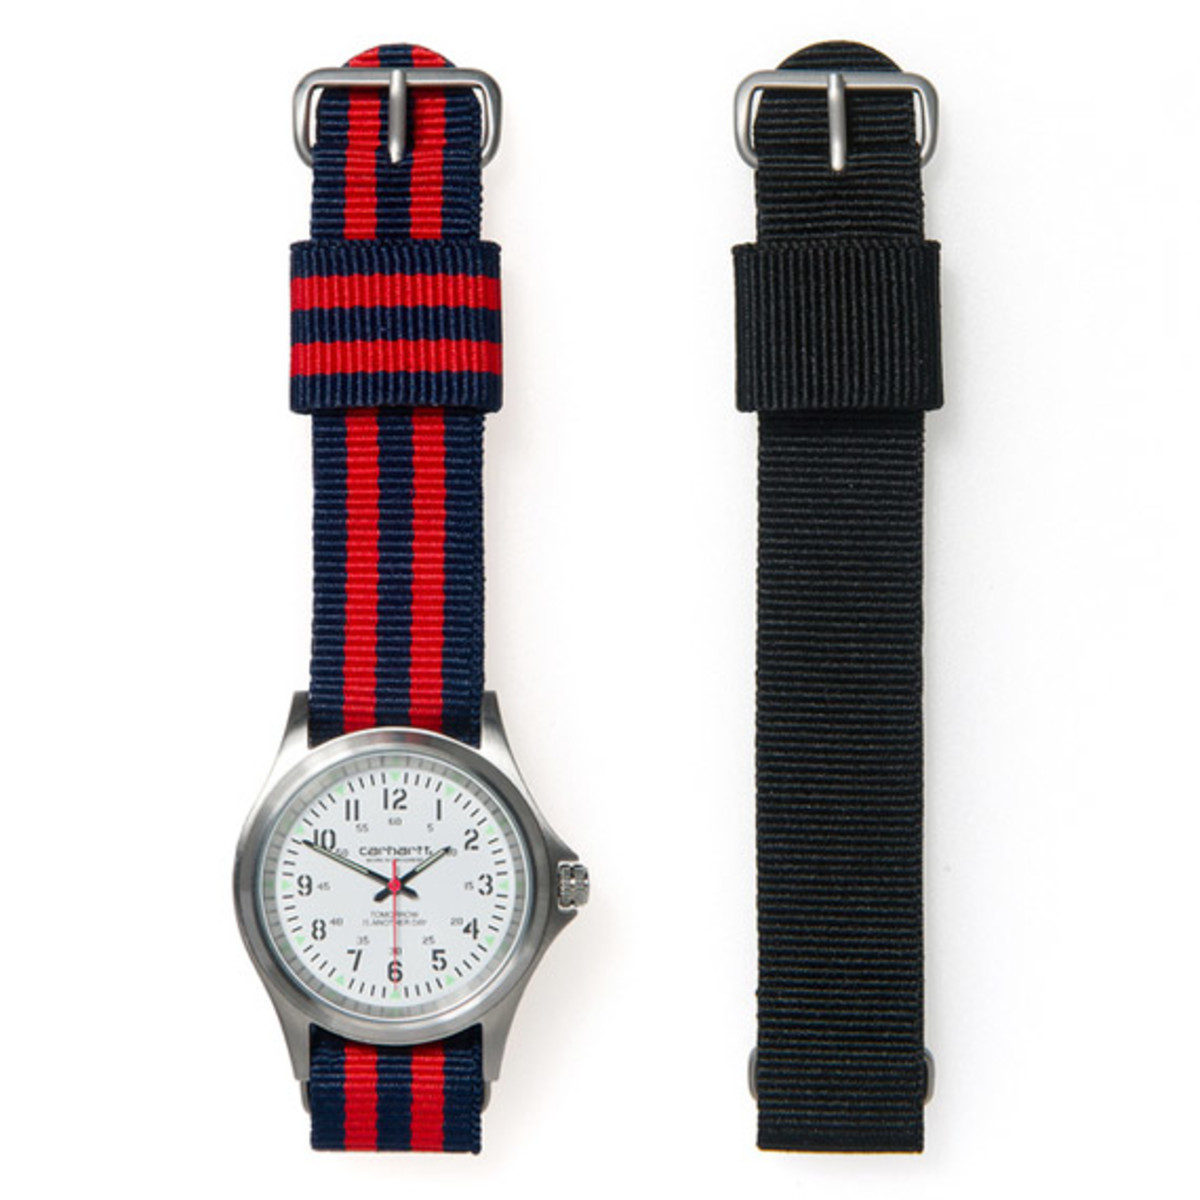 carhartt-wip-military-watch-02